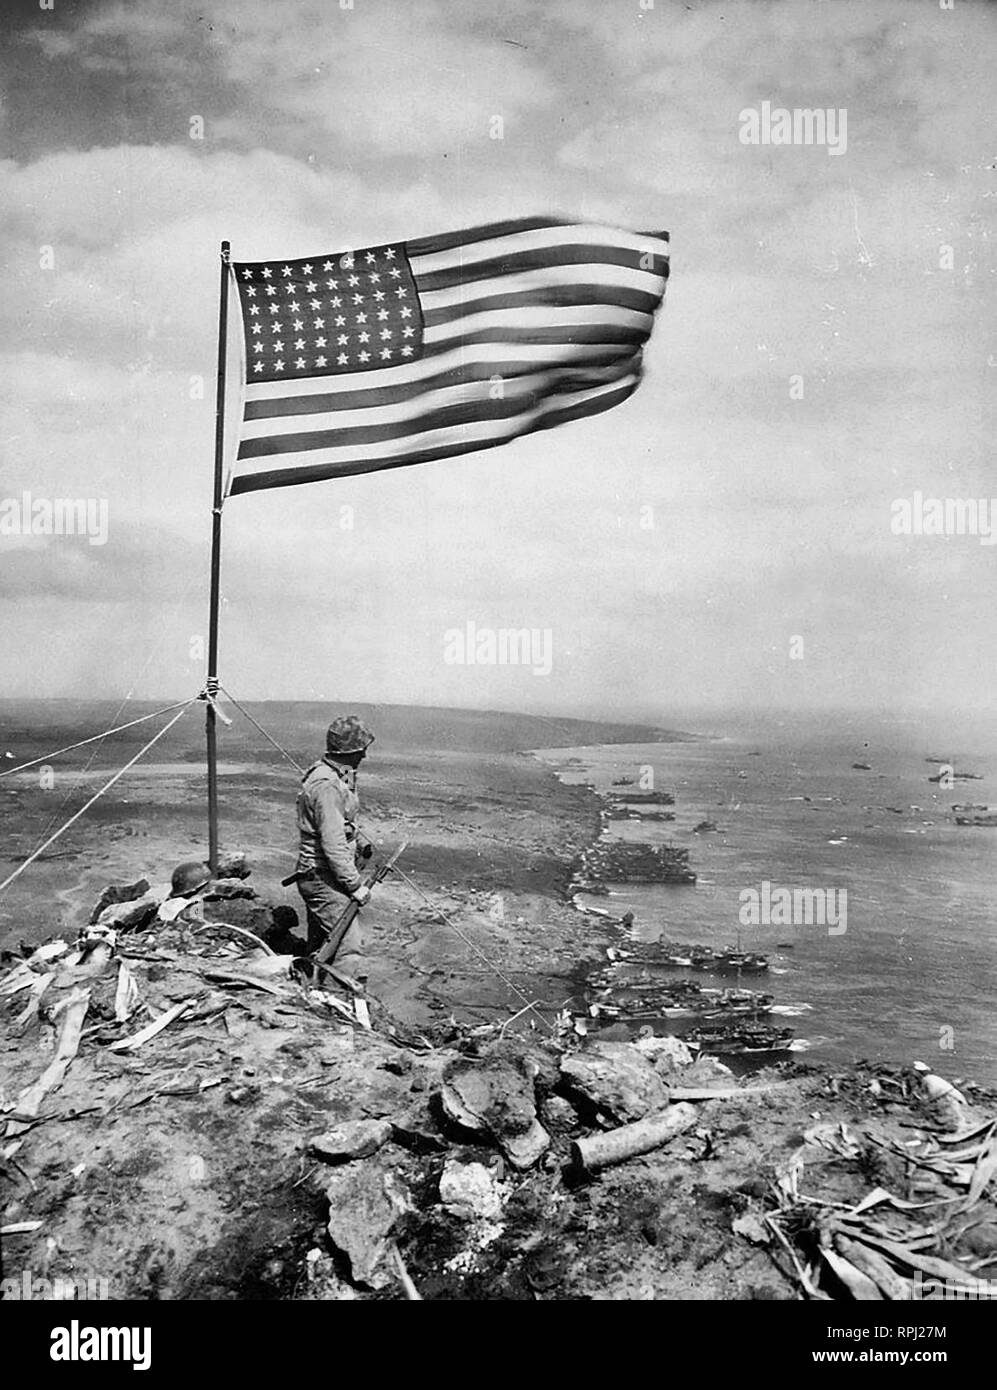 From the crest of Mount Suribachi, the Stars and Stripes wave in triumph over Iwo Jima after U.S. Marines had fought their way inch by inch up its steep lava-encrusted slopes - Stock Image